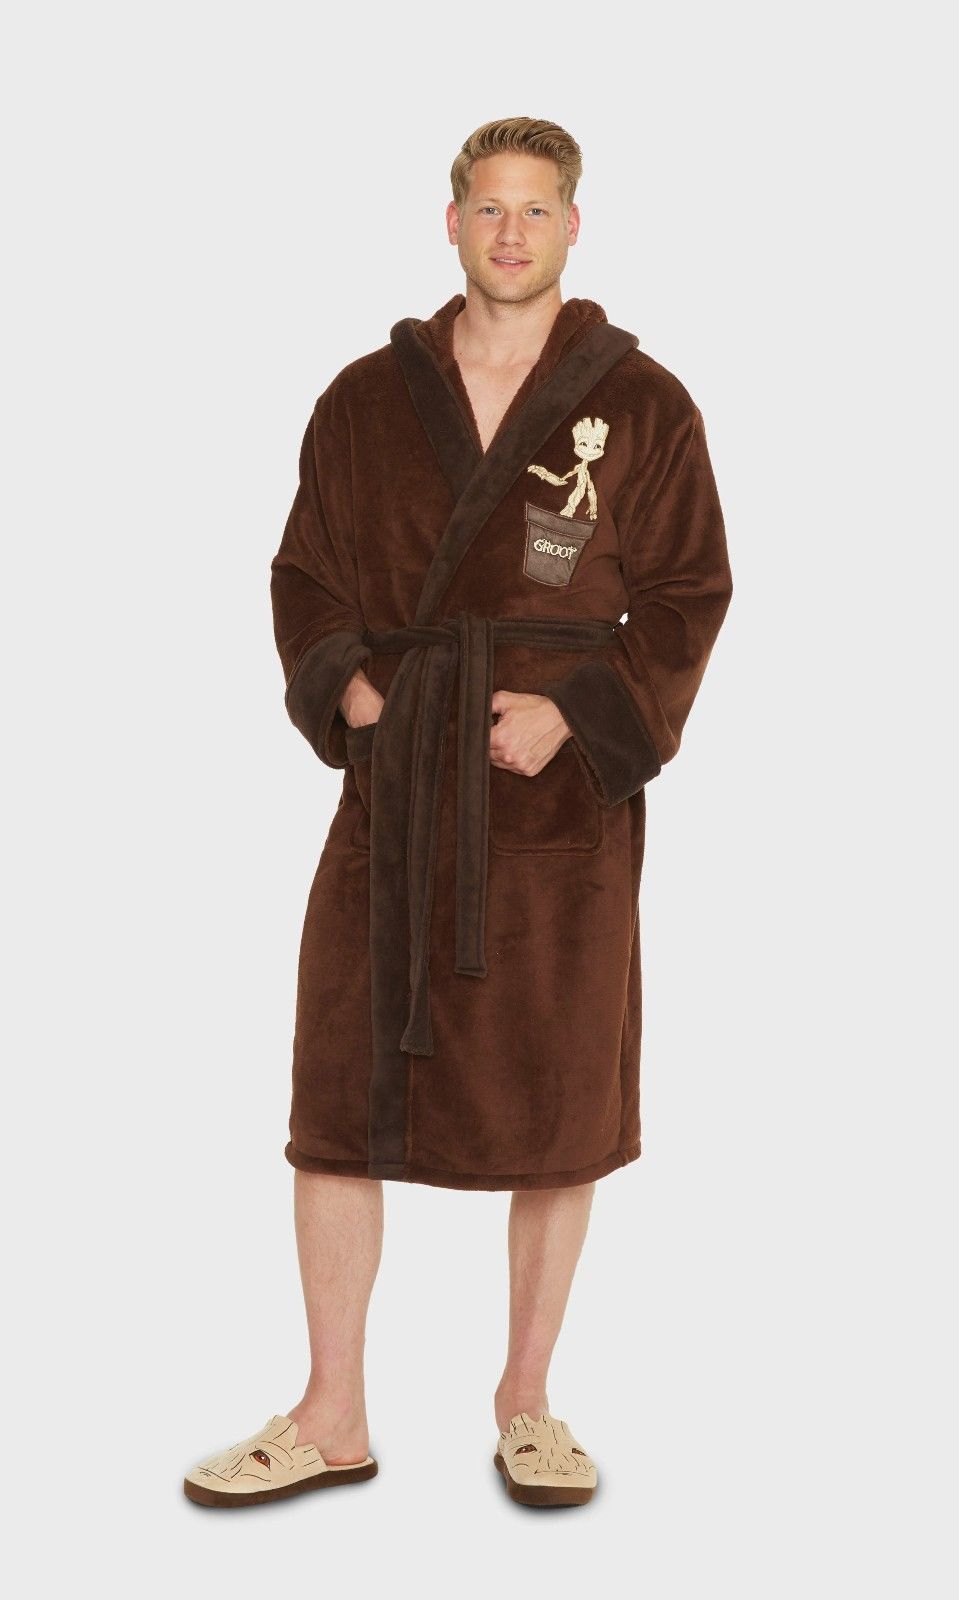 Marvel Guardians of the Galaxy Groot Hooded Dressing Gown Robe ...